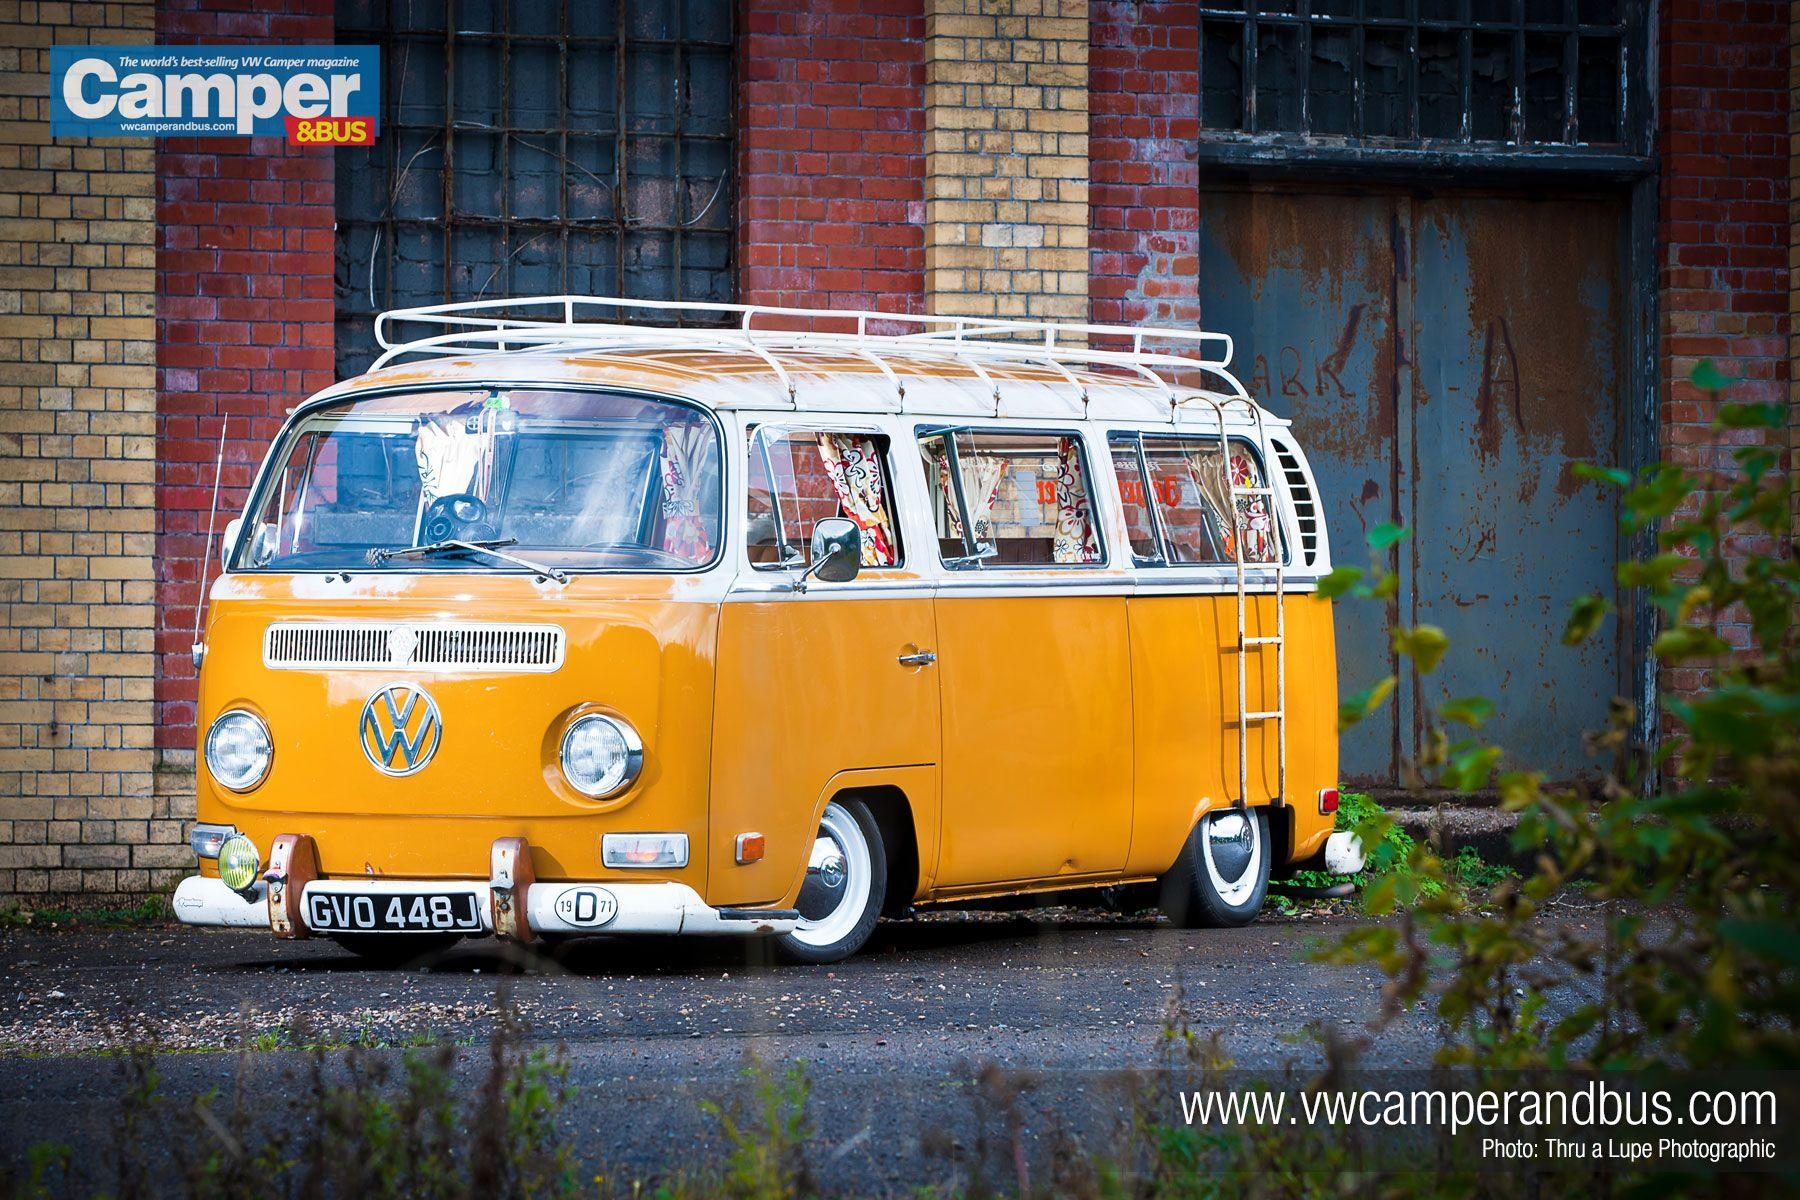 Cars Wallpaper: Vw Bus Wallpapers Image with HD Desktop